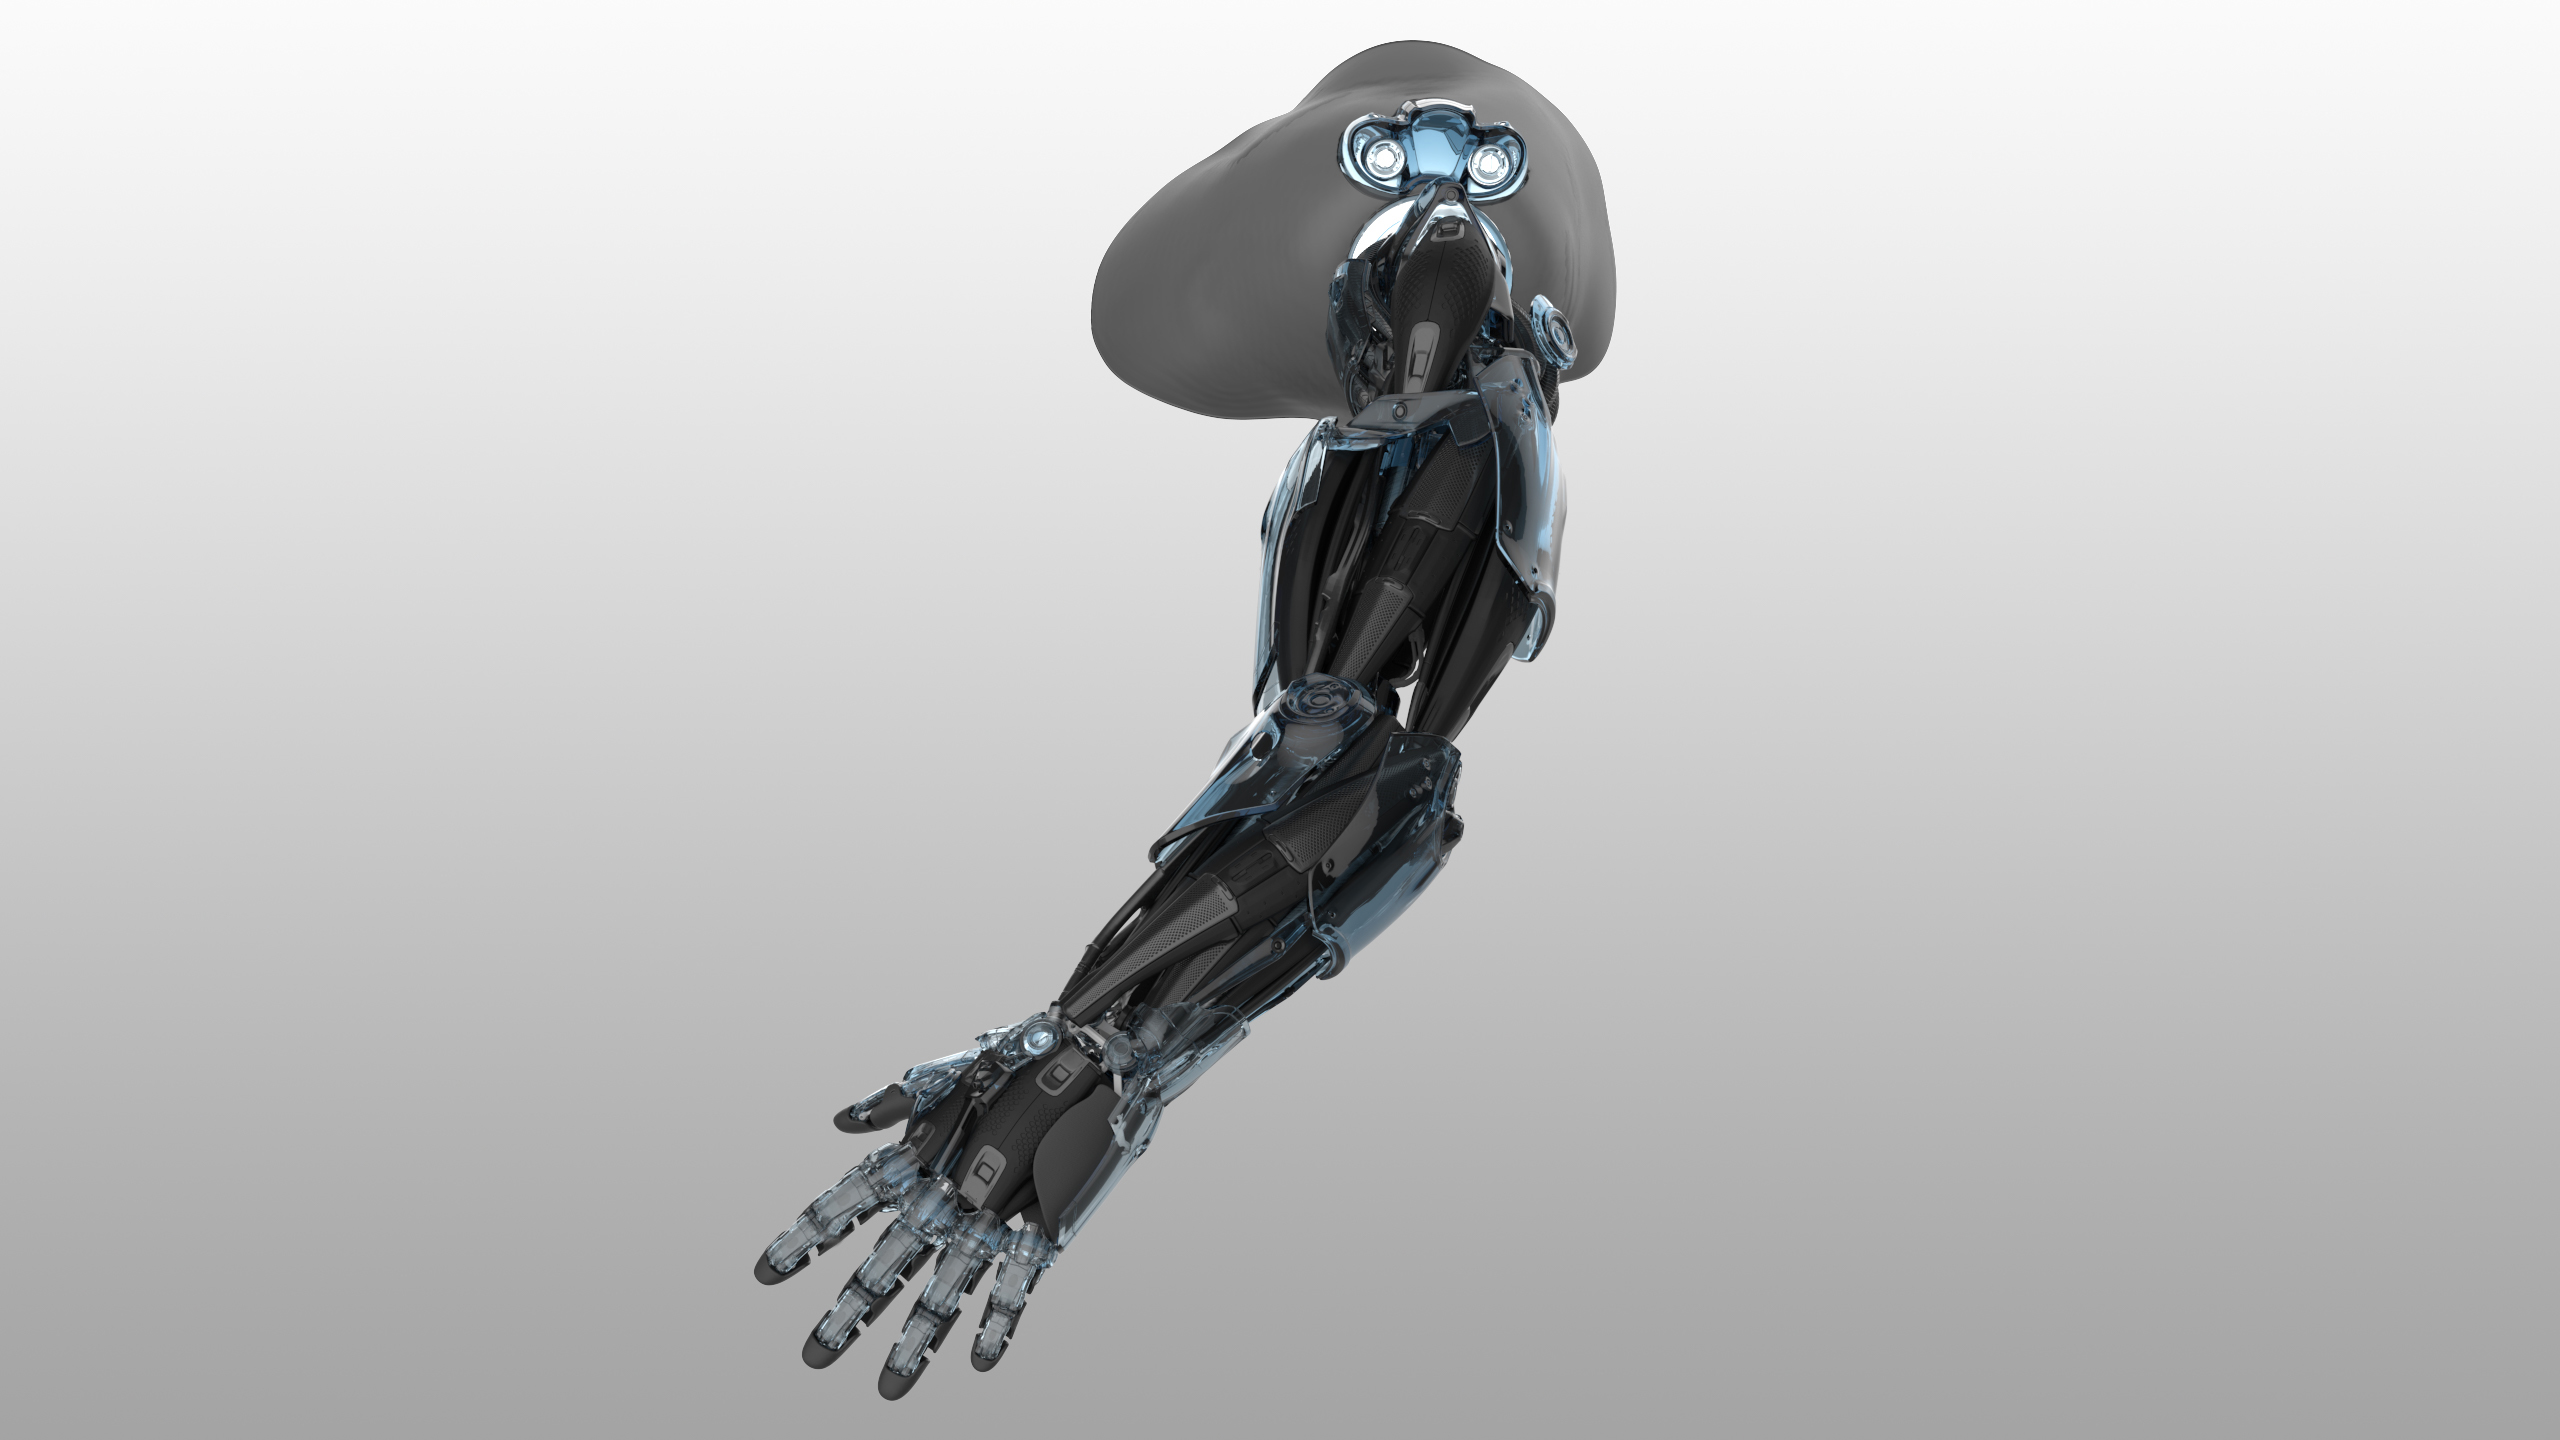 Side view shot of Bionic Arm Concept